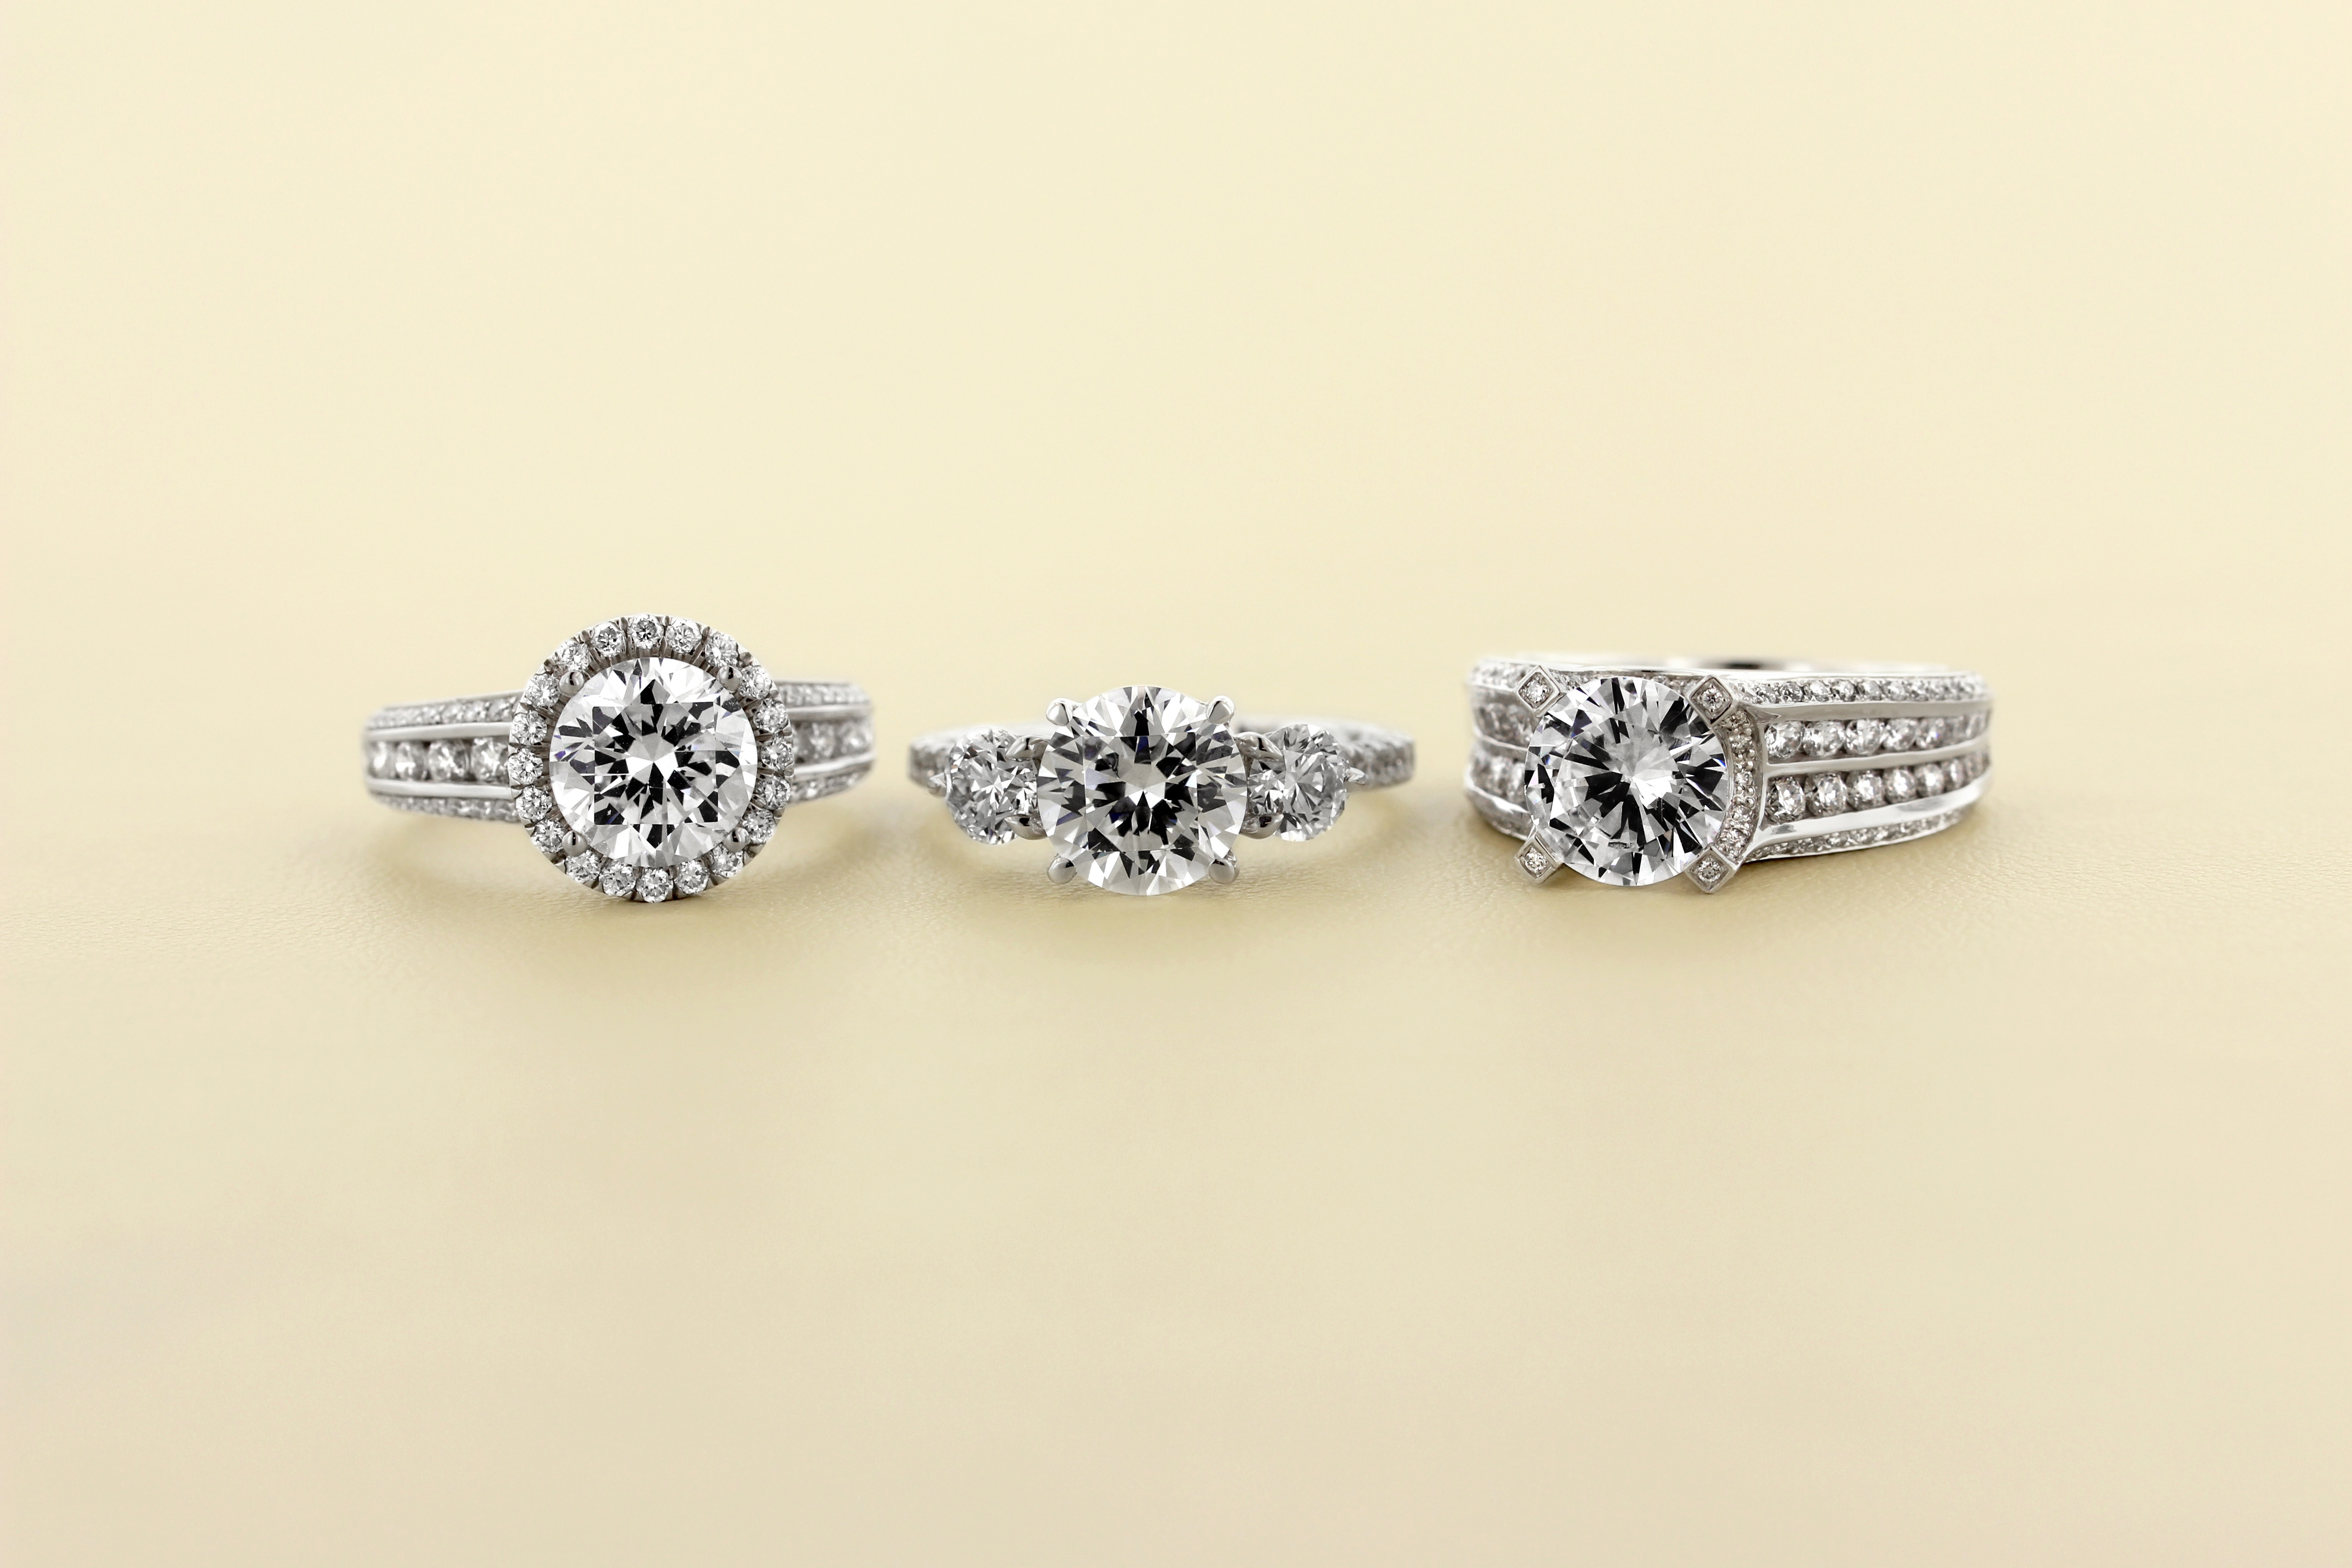 Insider Secrets To Keeping Your Diamond Sparkling Don't Touch The Diamonds